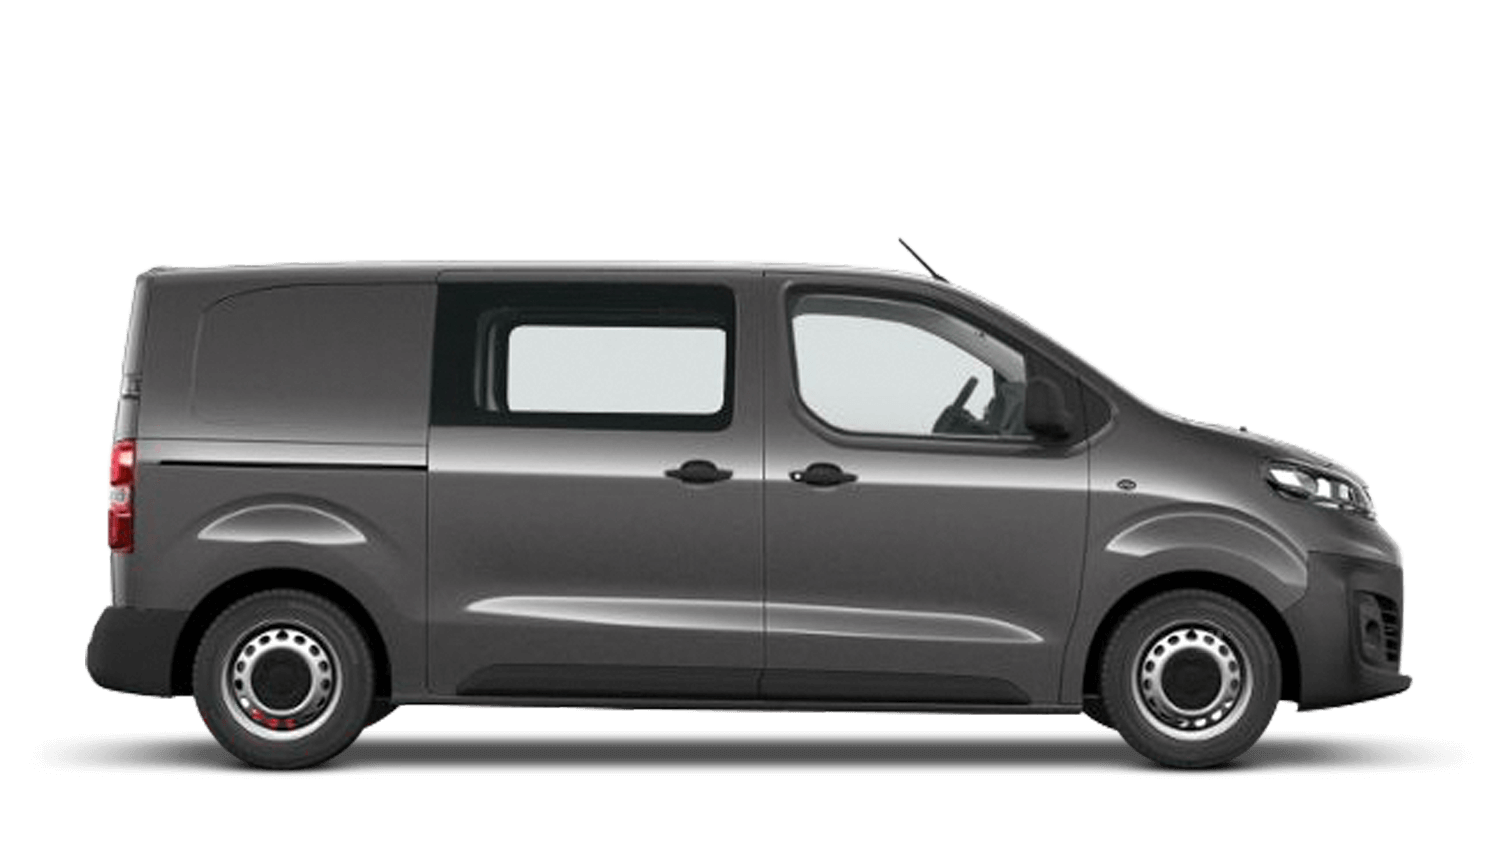 Moonstone Grey (Metallic) New Vauxhall Vivaro